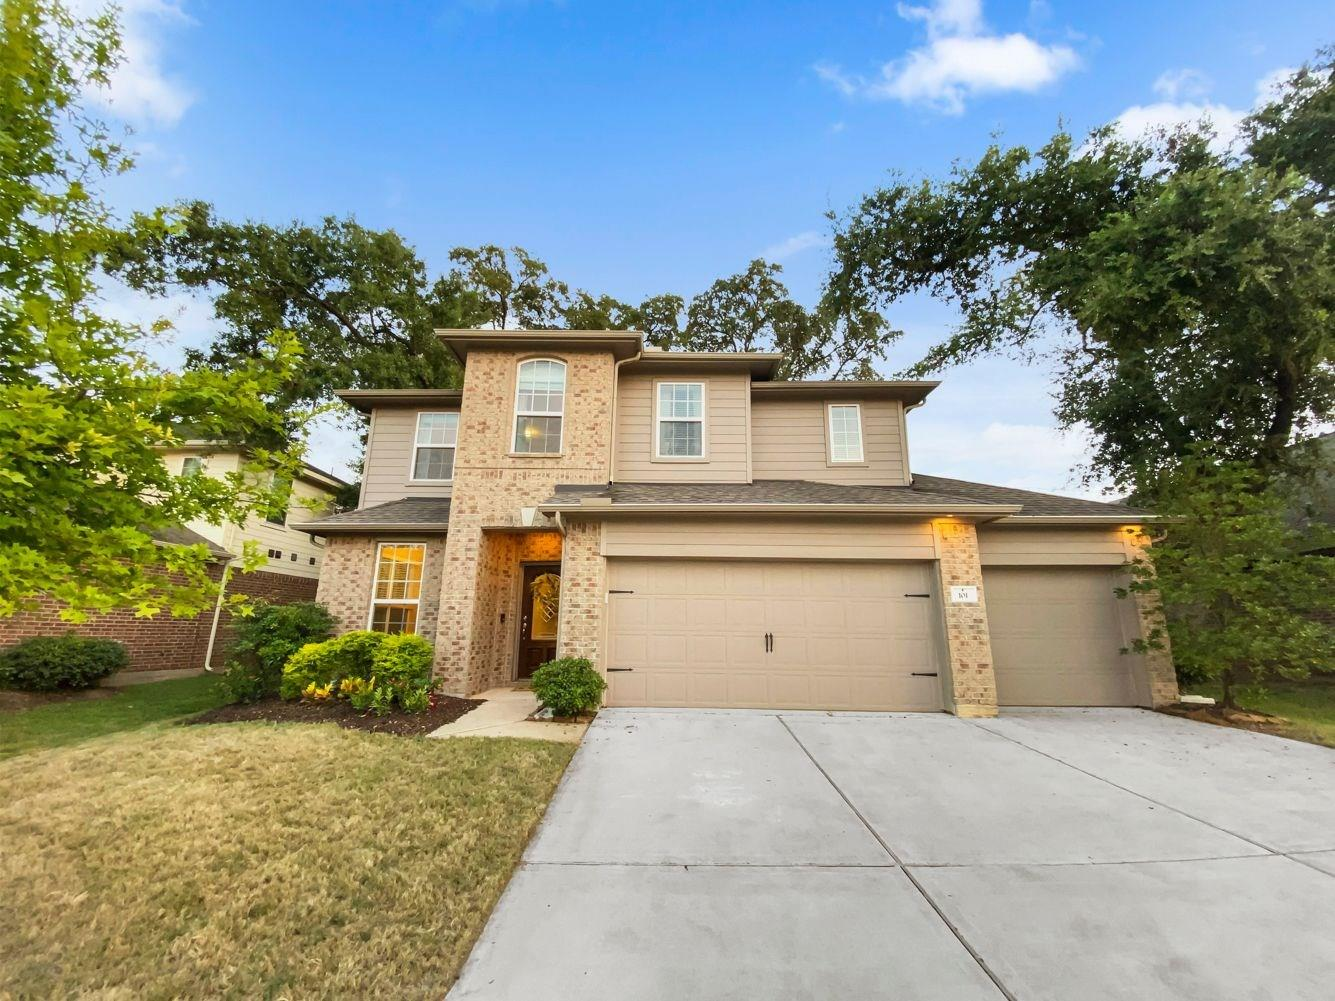 101 Meadow Ridge Way Property Photo - Clute, TX real estate listing